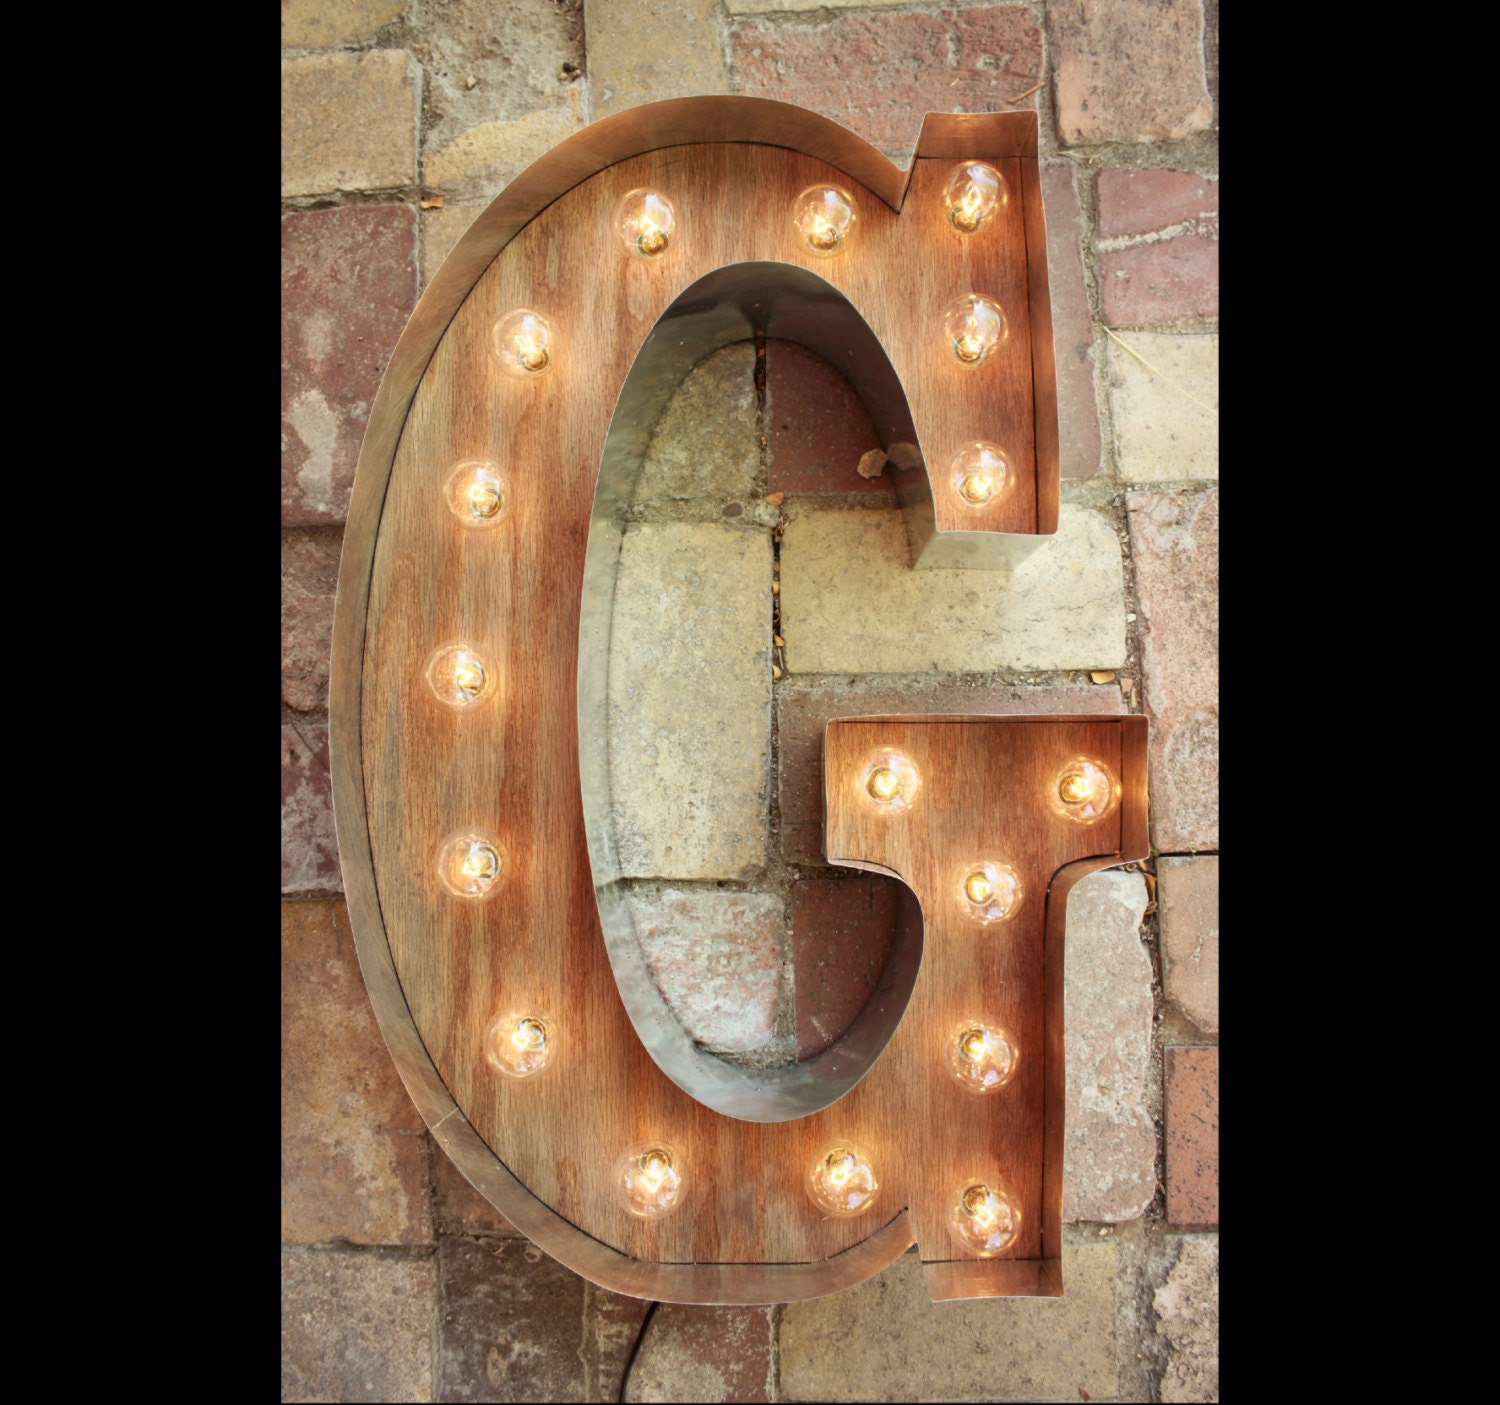 marquee light up letters g marquee light up letters sign led battery operated in 23581 | il fullxfull.831392364 tc1a